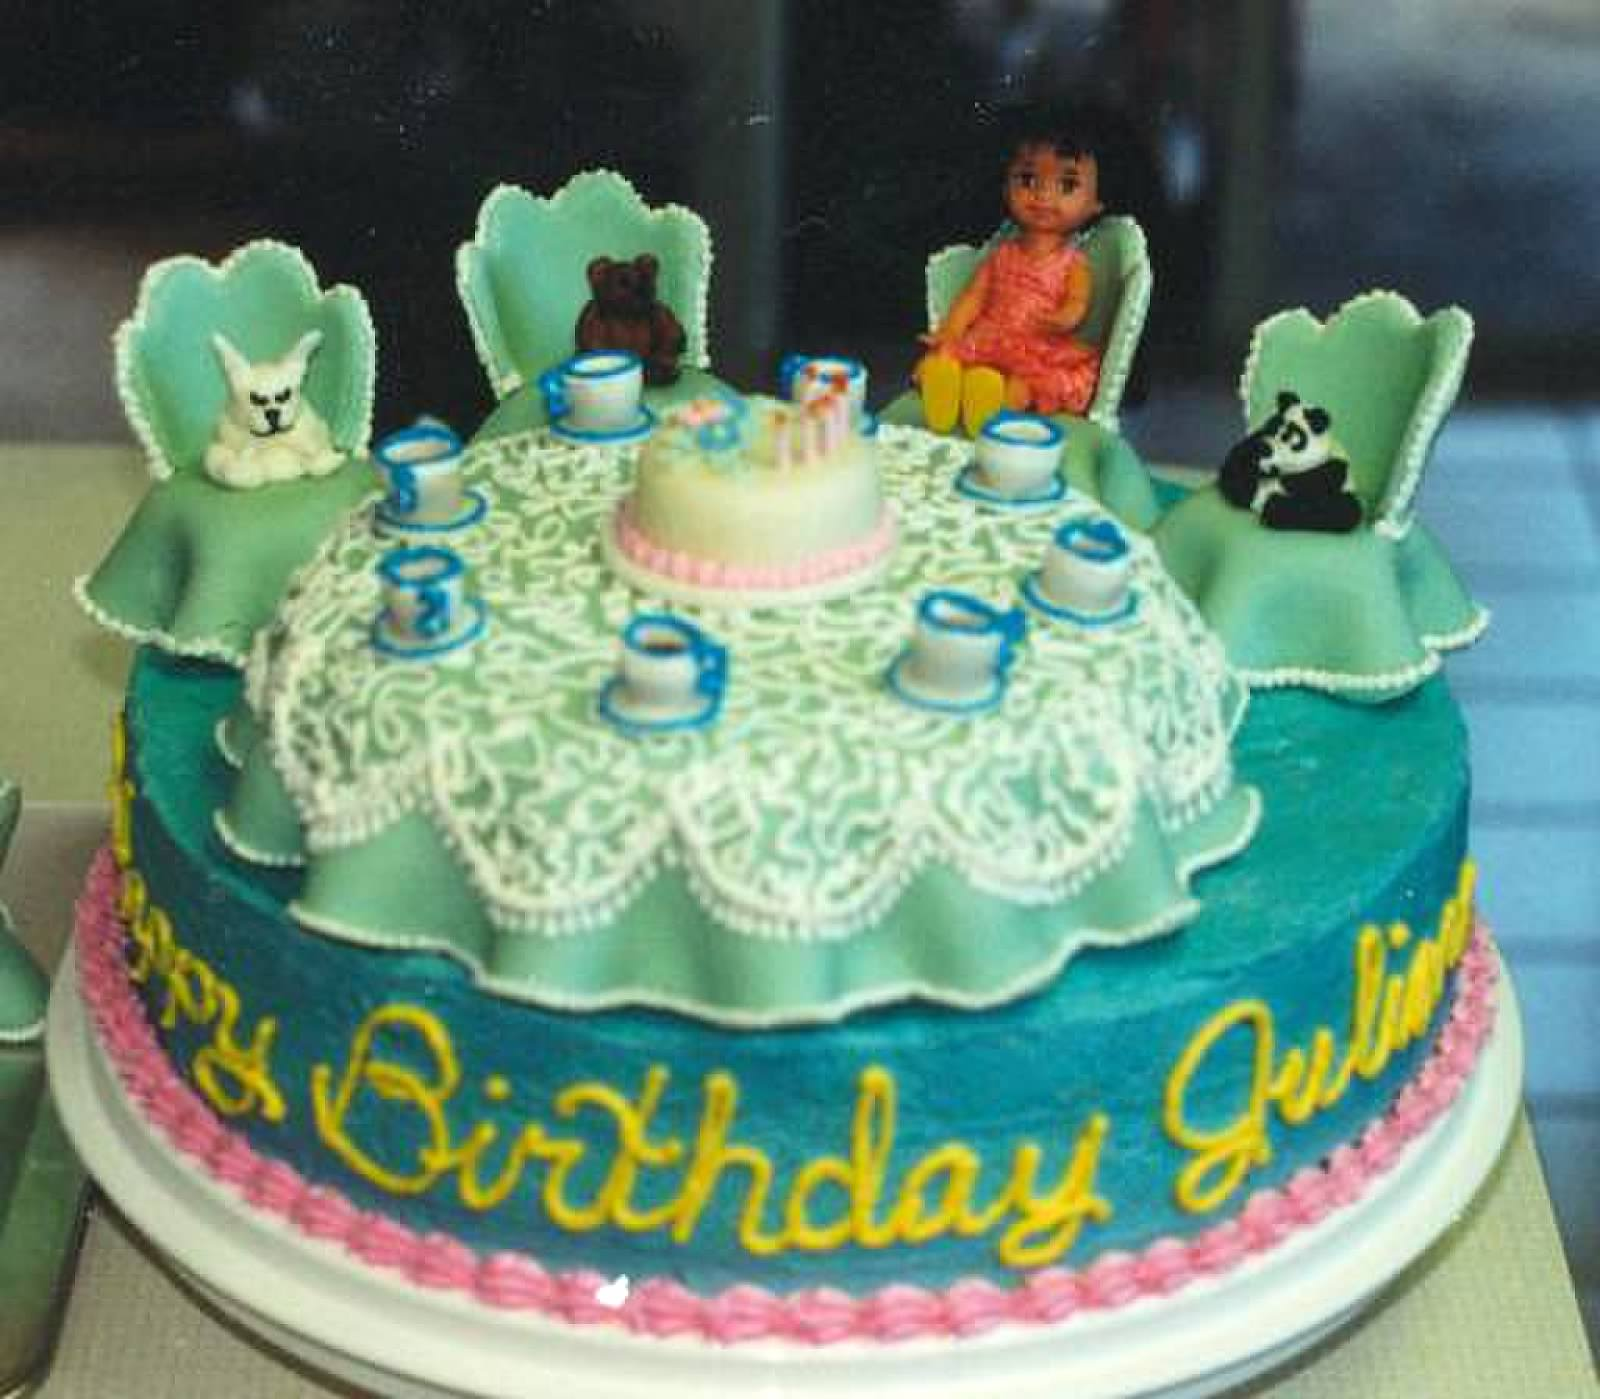 Cake Decorating Classes In Wilkes Barre Scranton Area